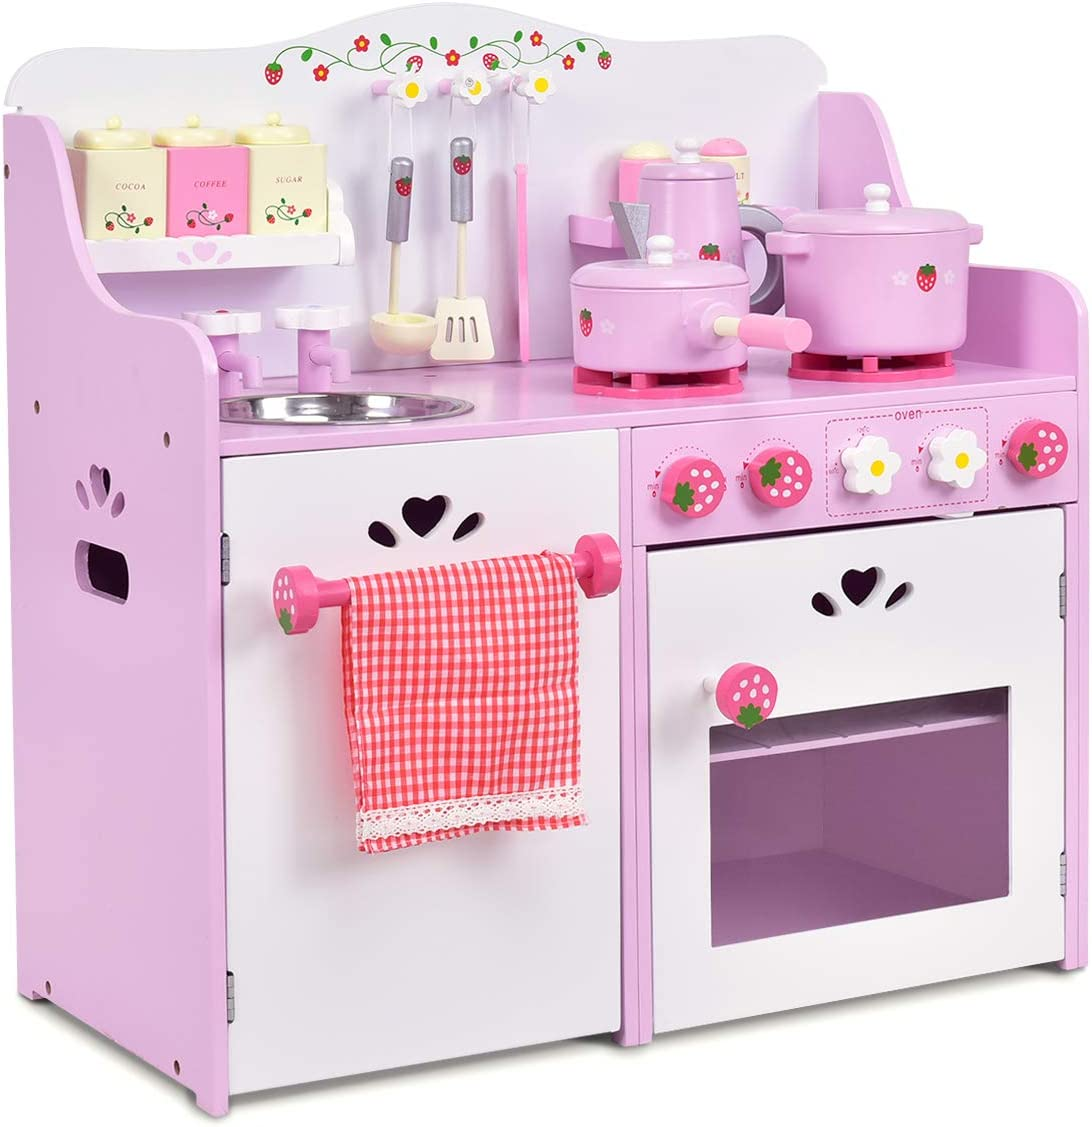 Amazon.com: Costzon Kids Kitchen Playset, Wooden Cookware ...